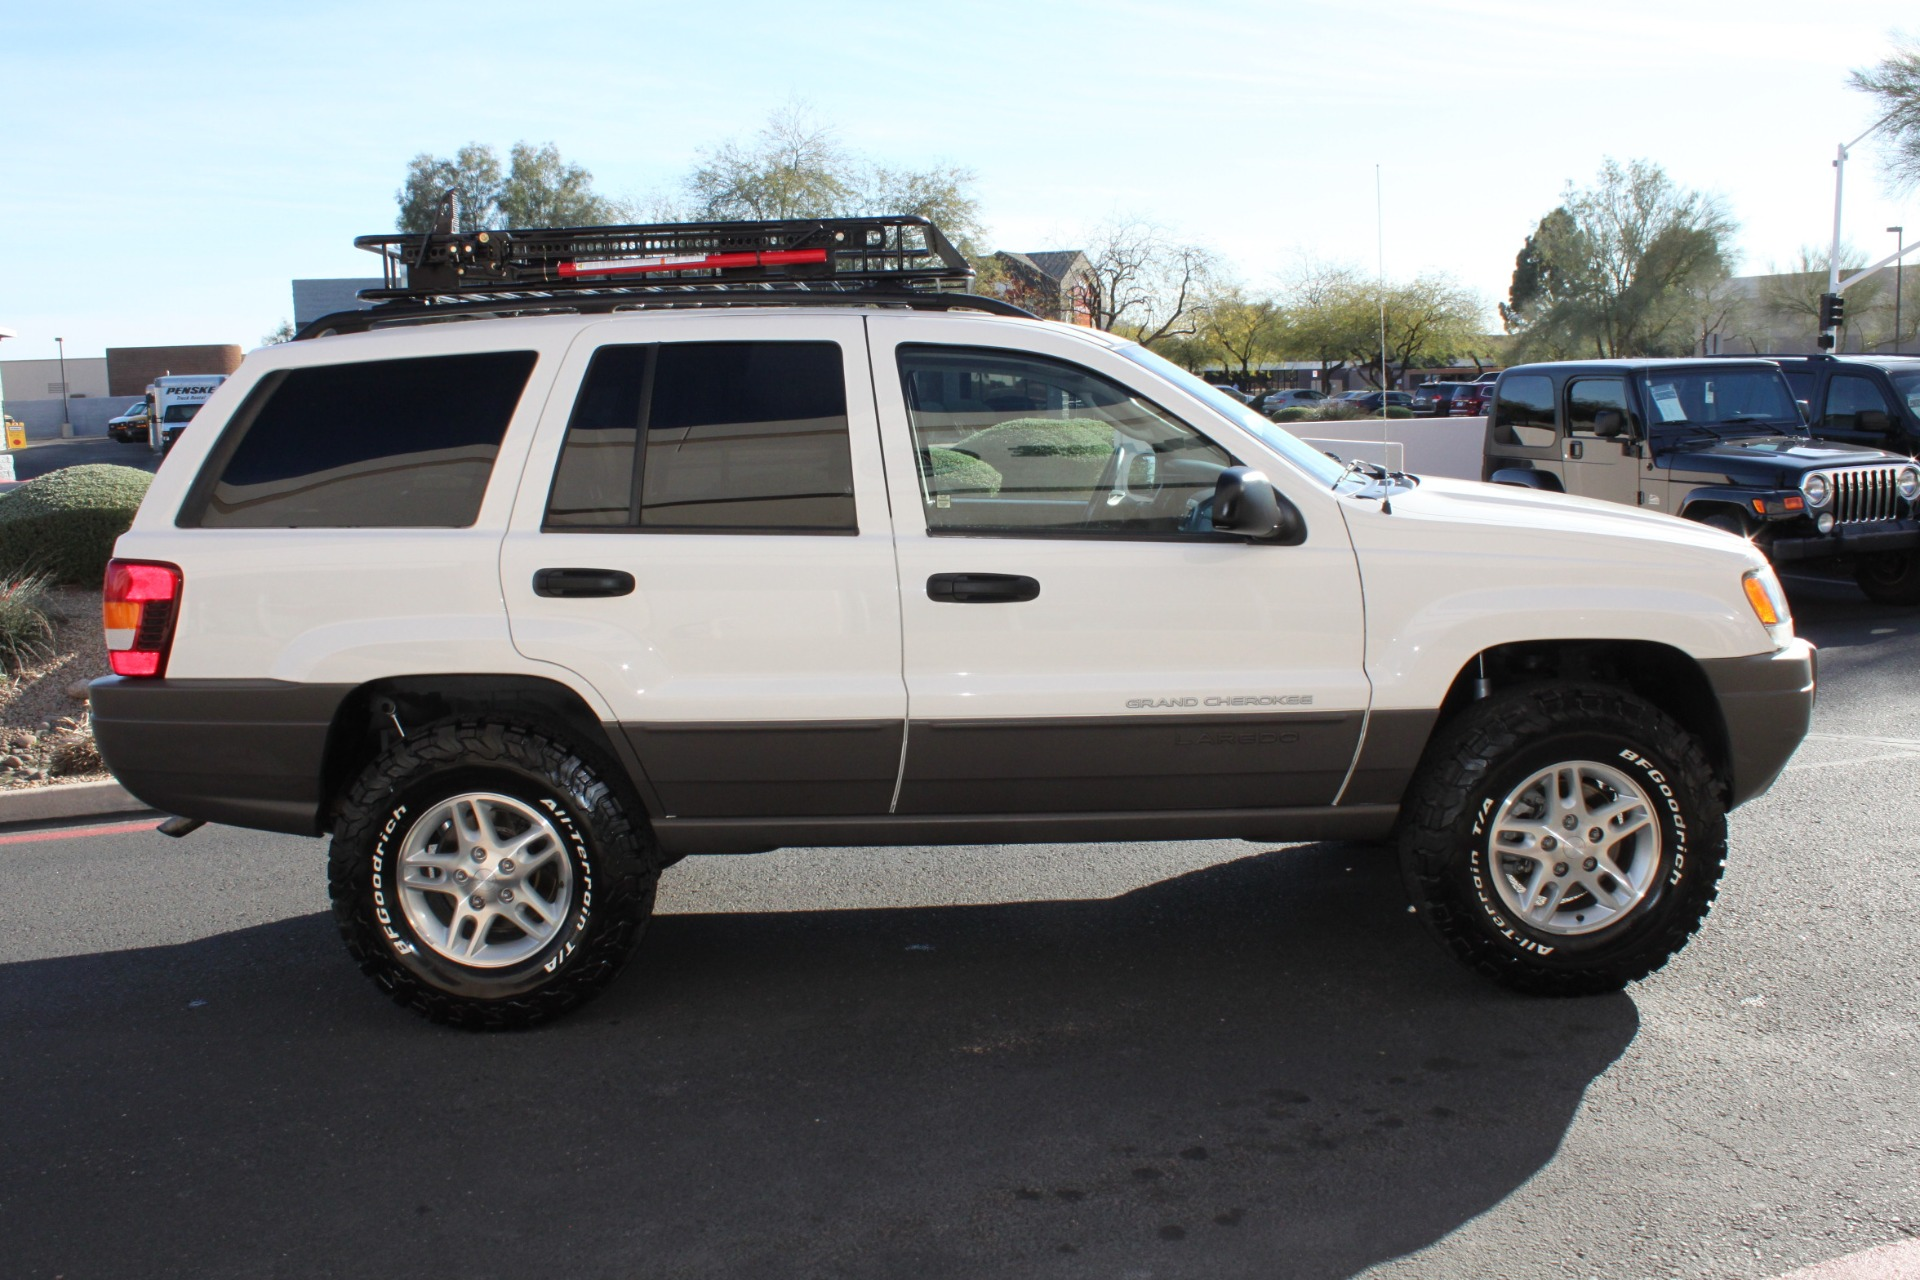 Used-2004-Jeep-Grand-Cherokee-Laredo-Chrysler